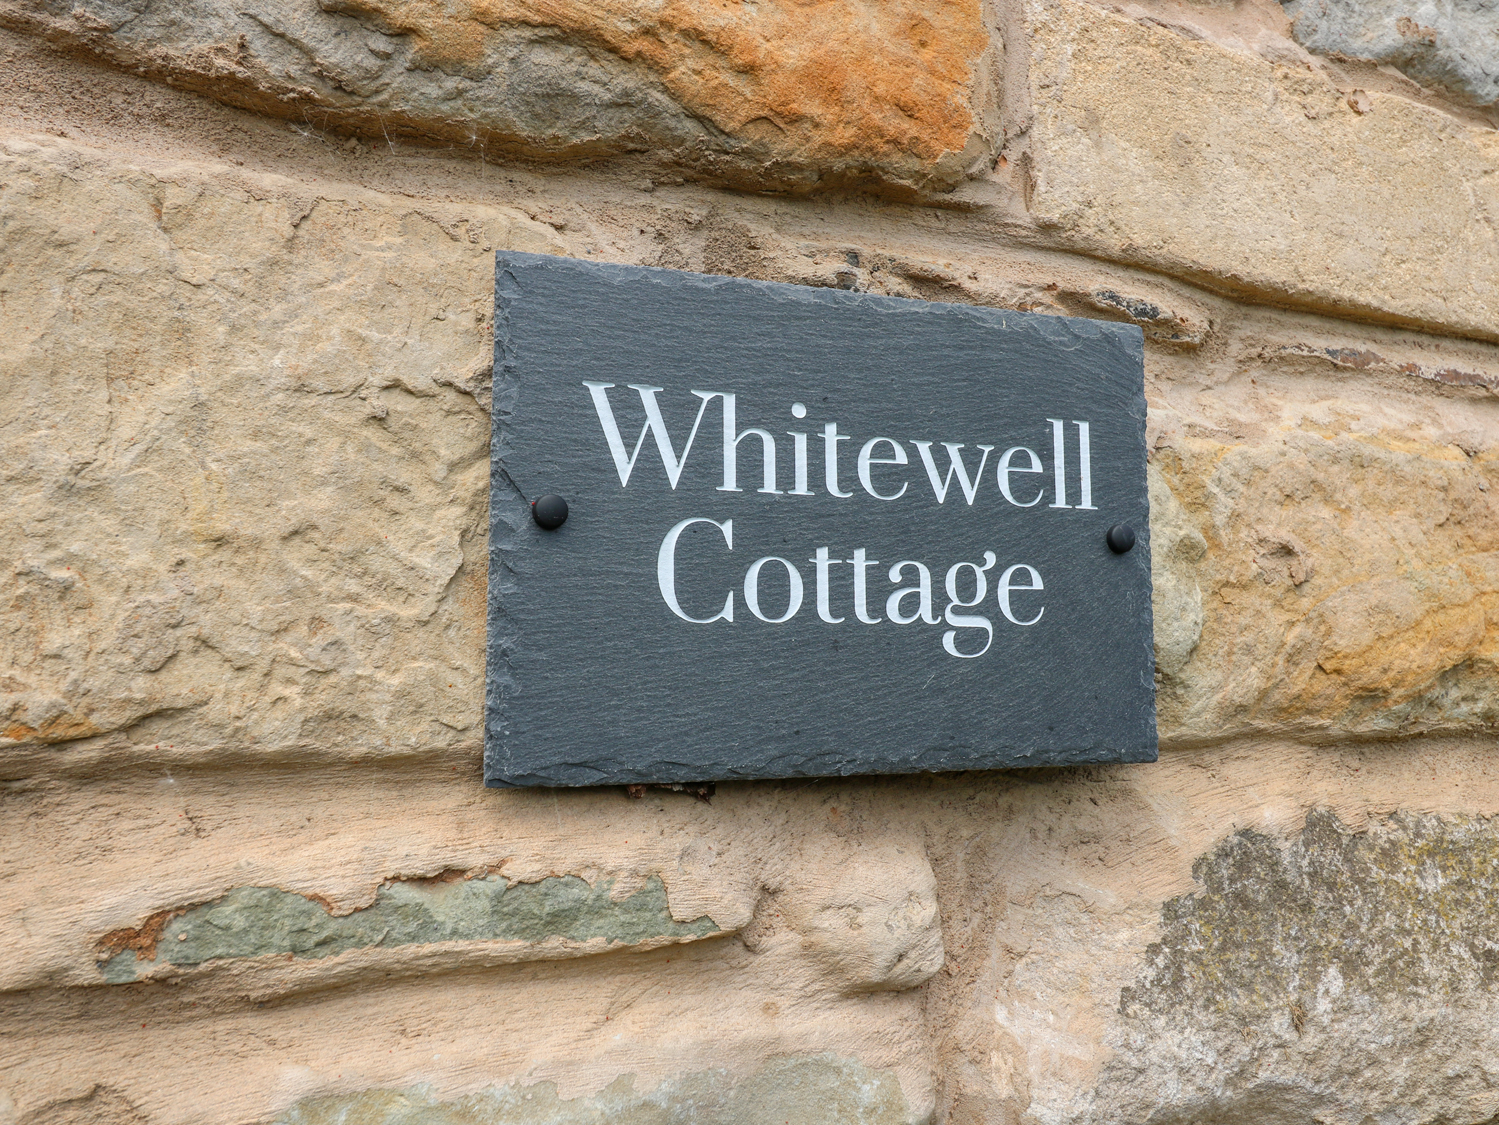 Whitewell Cottage